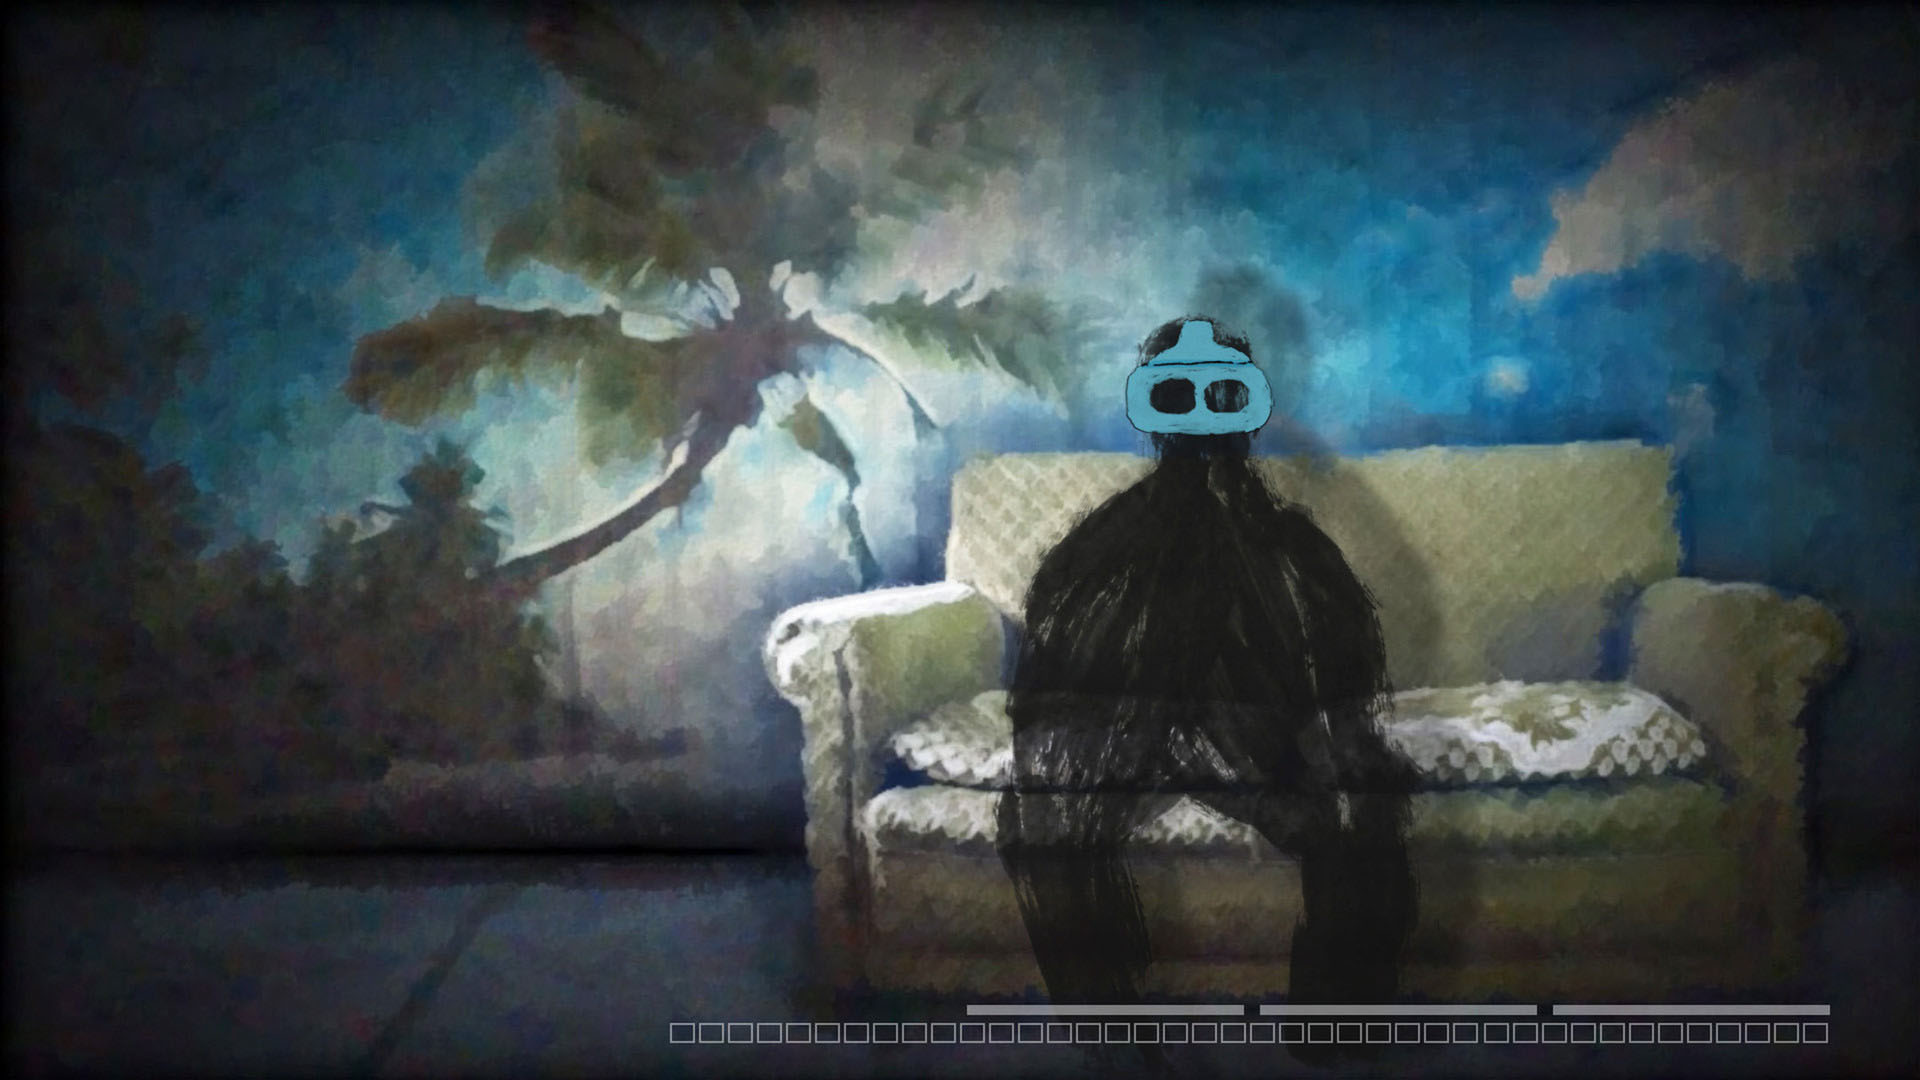 Animated Realities